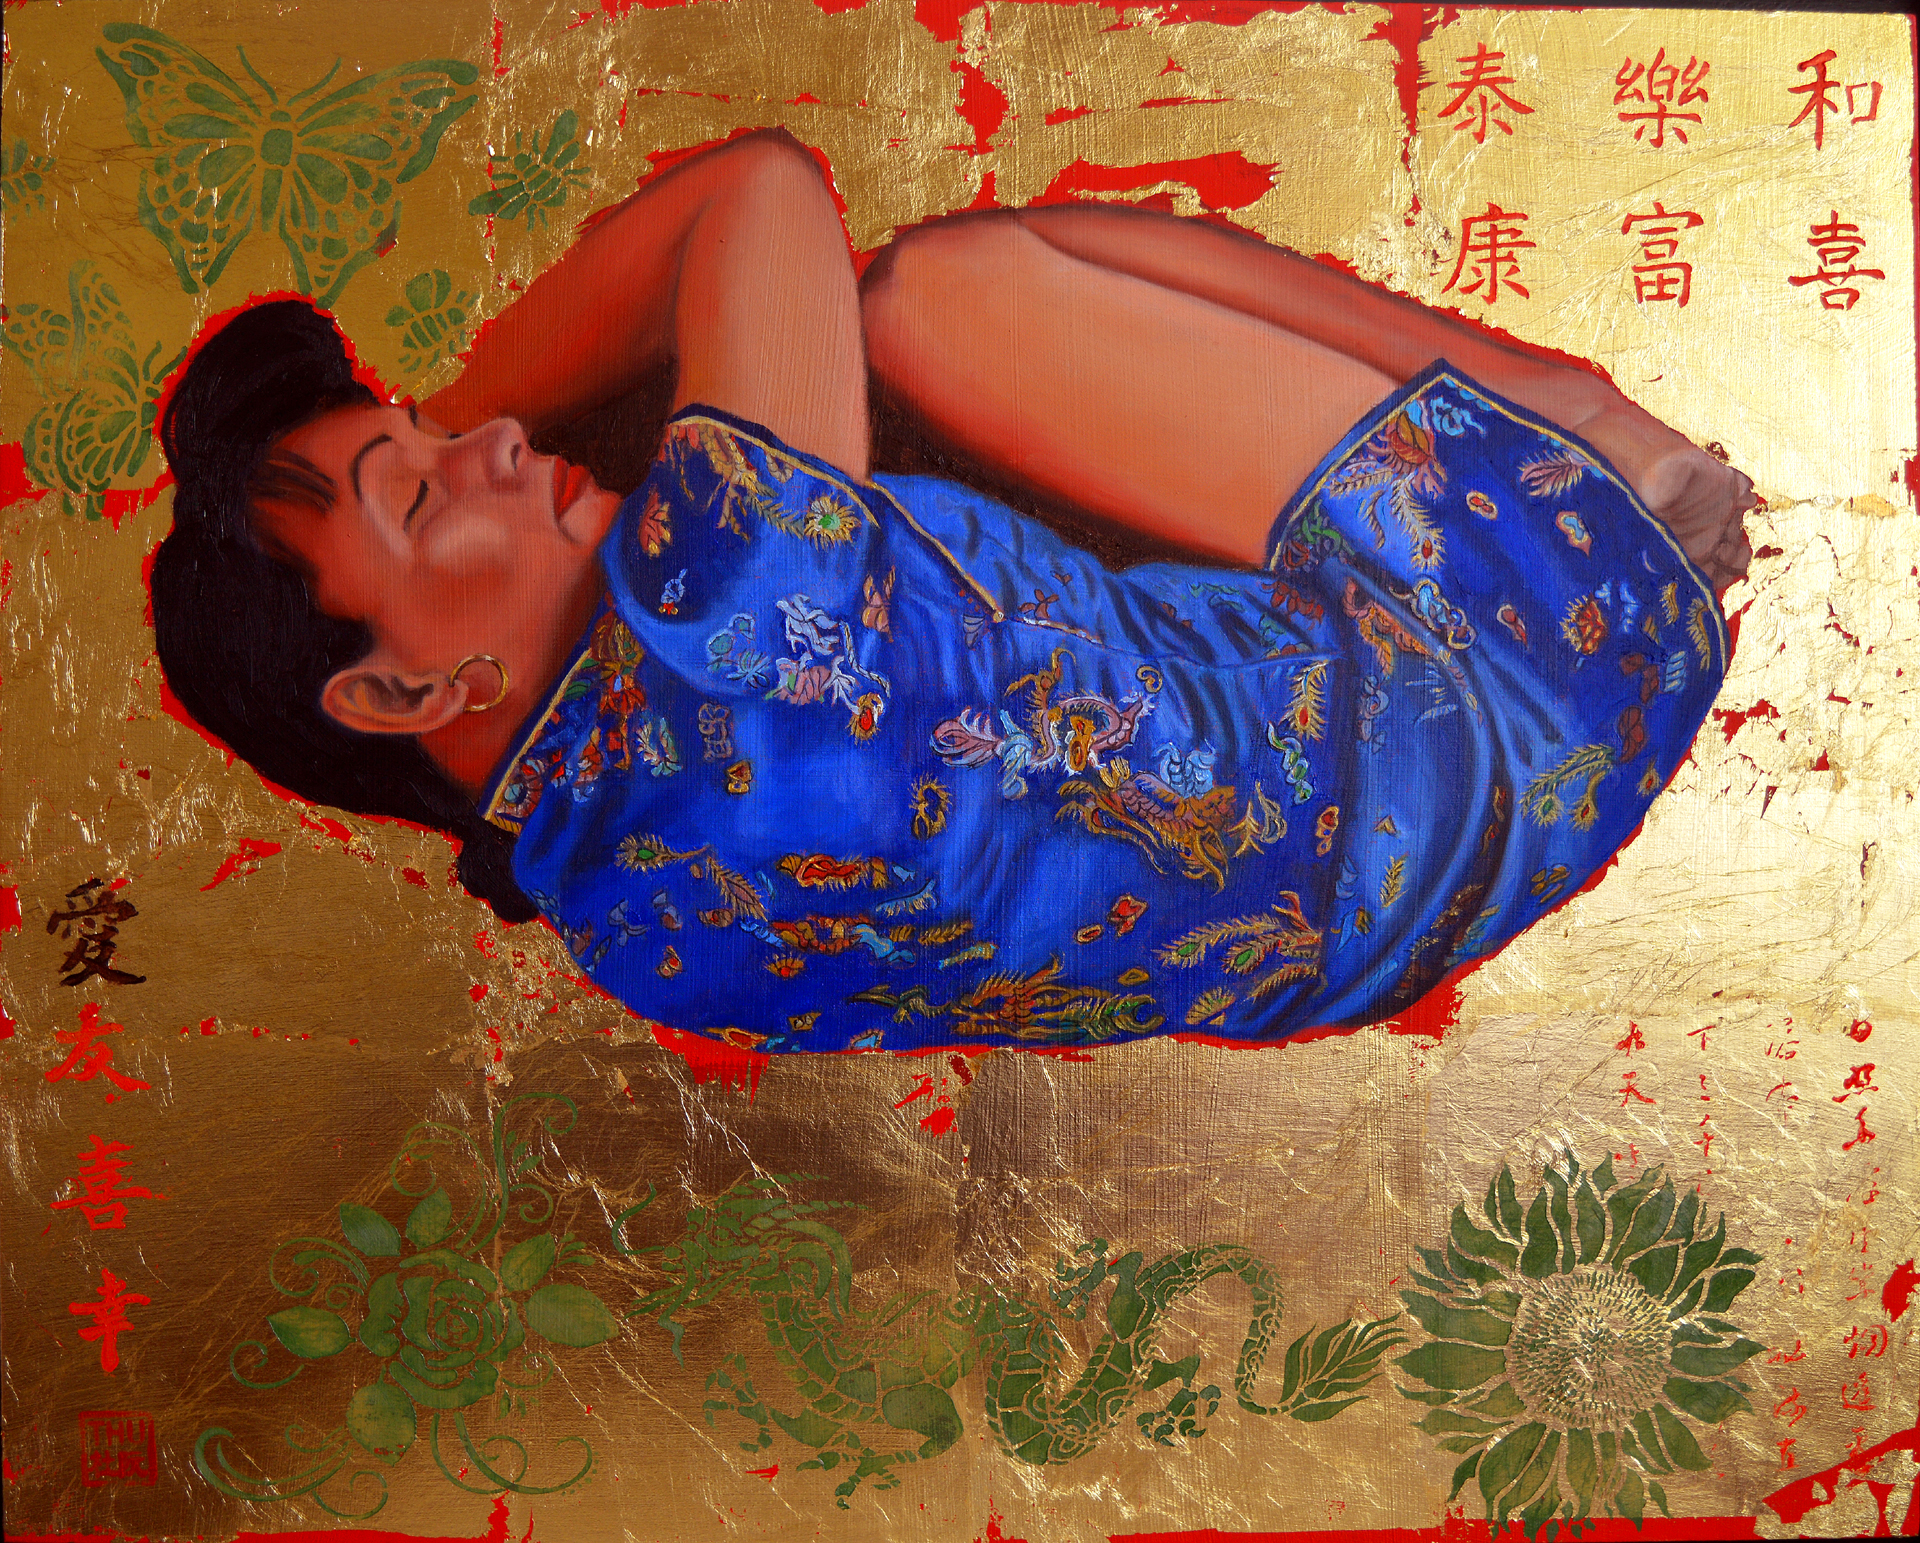 Thu Nguyen: 'the dream', 2019 Oil Painting, Figurative. Painting with the image of a sleeping, crouching Chinese Woman.  Medium- format painting with a combination of different materials and techniques - from relief acrylic to luxurious 24 kt gold leaf.Original paintingThe Dreamby Thu NguyenPainting is created on a panel and has a relief.  The painting is framed and ...